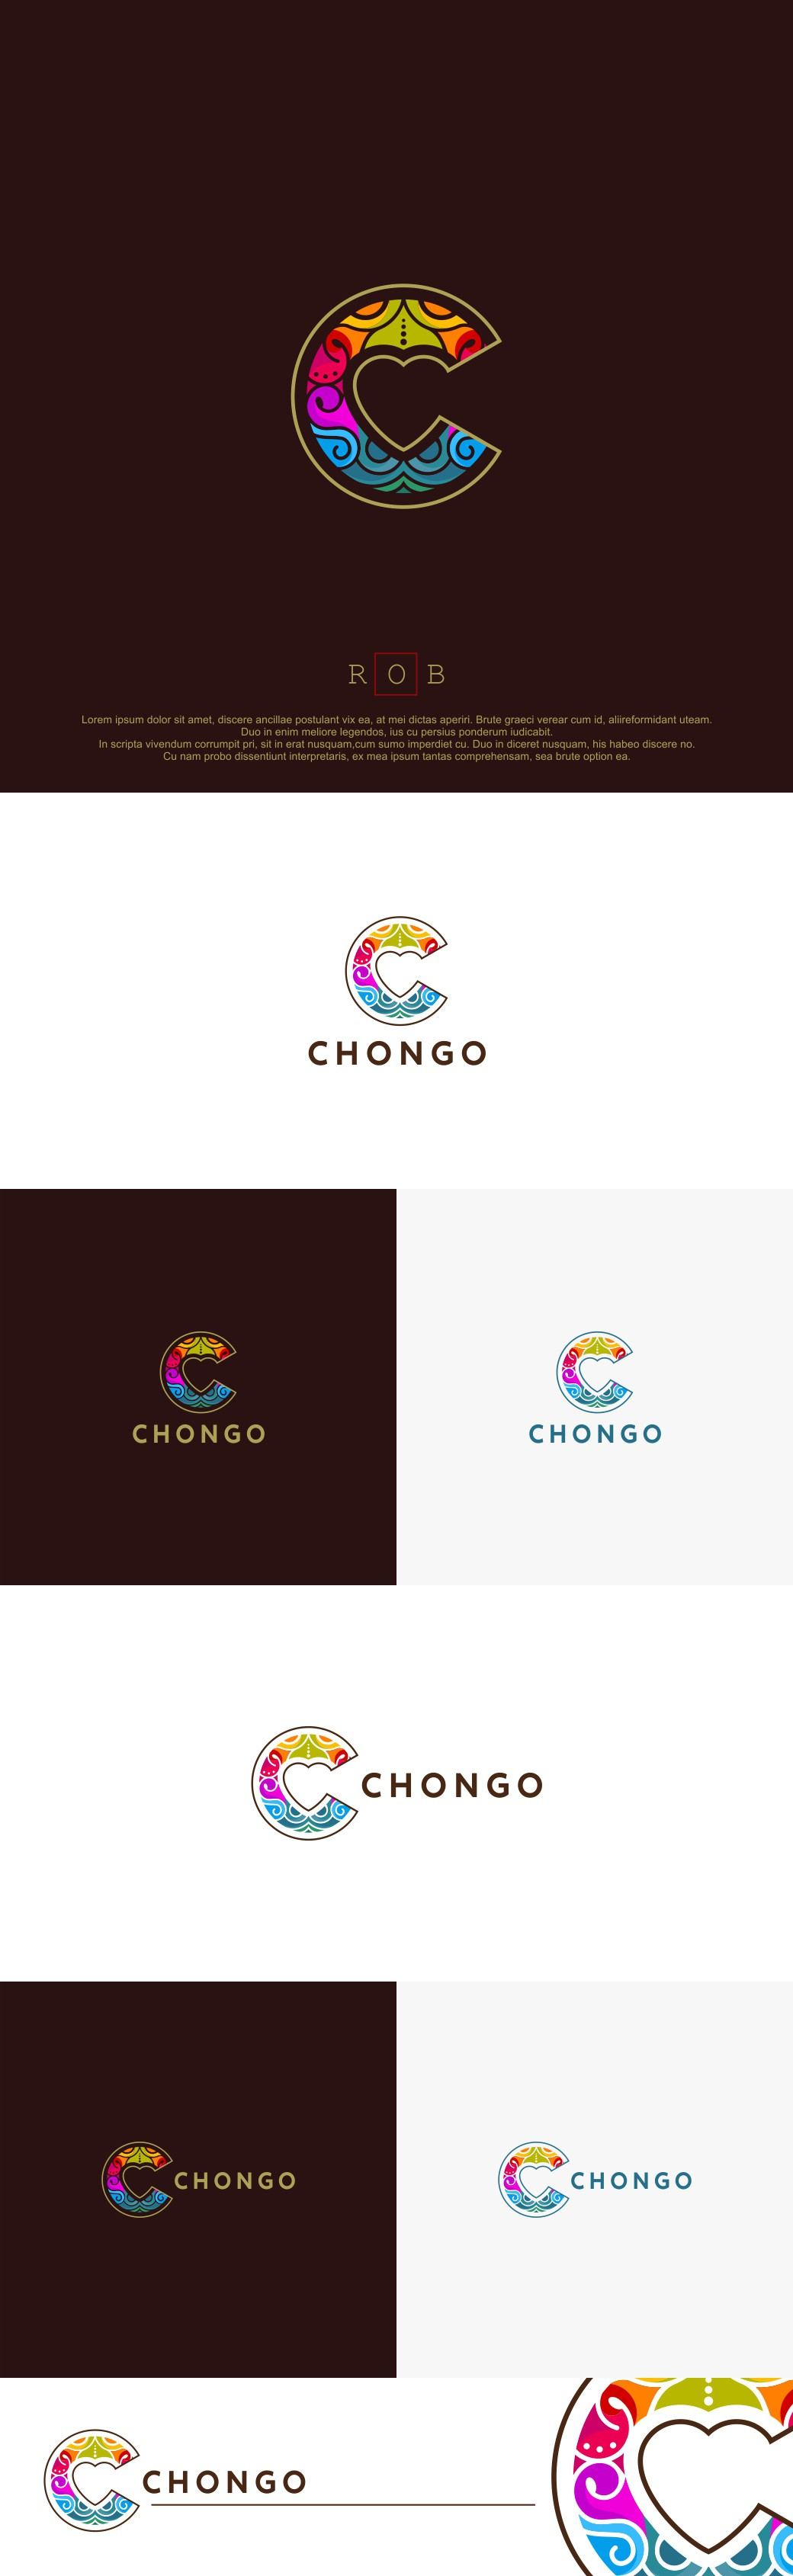 Chongo, connecting the world through chocolate ... need a great logo!